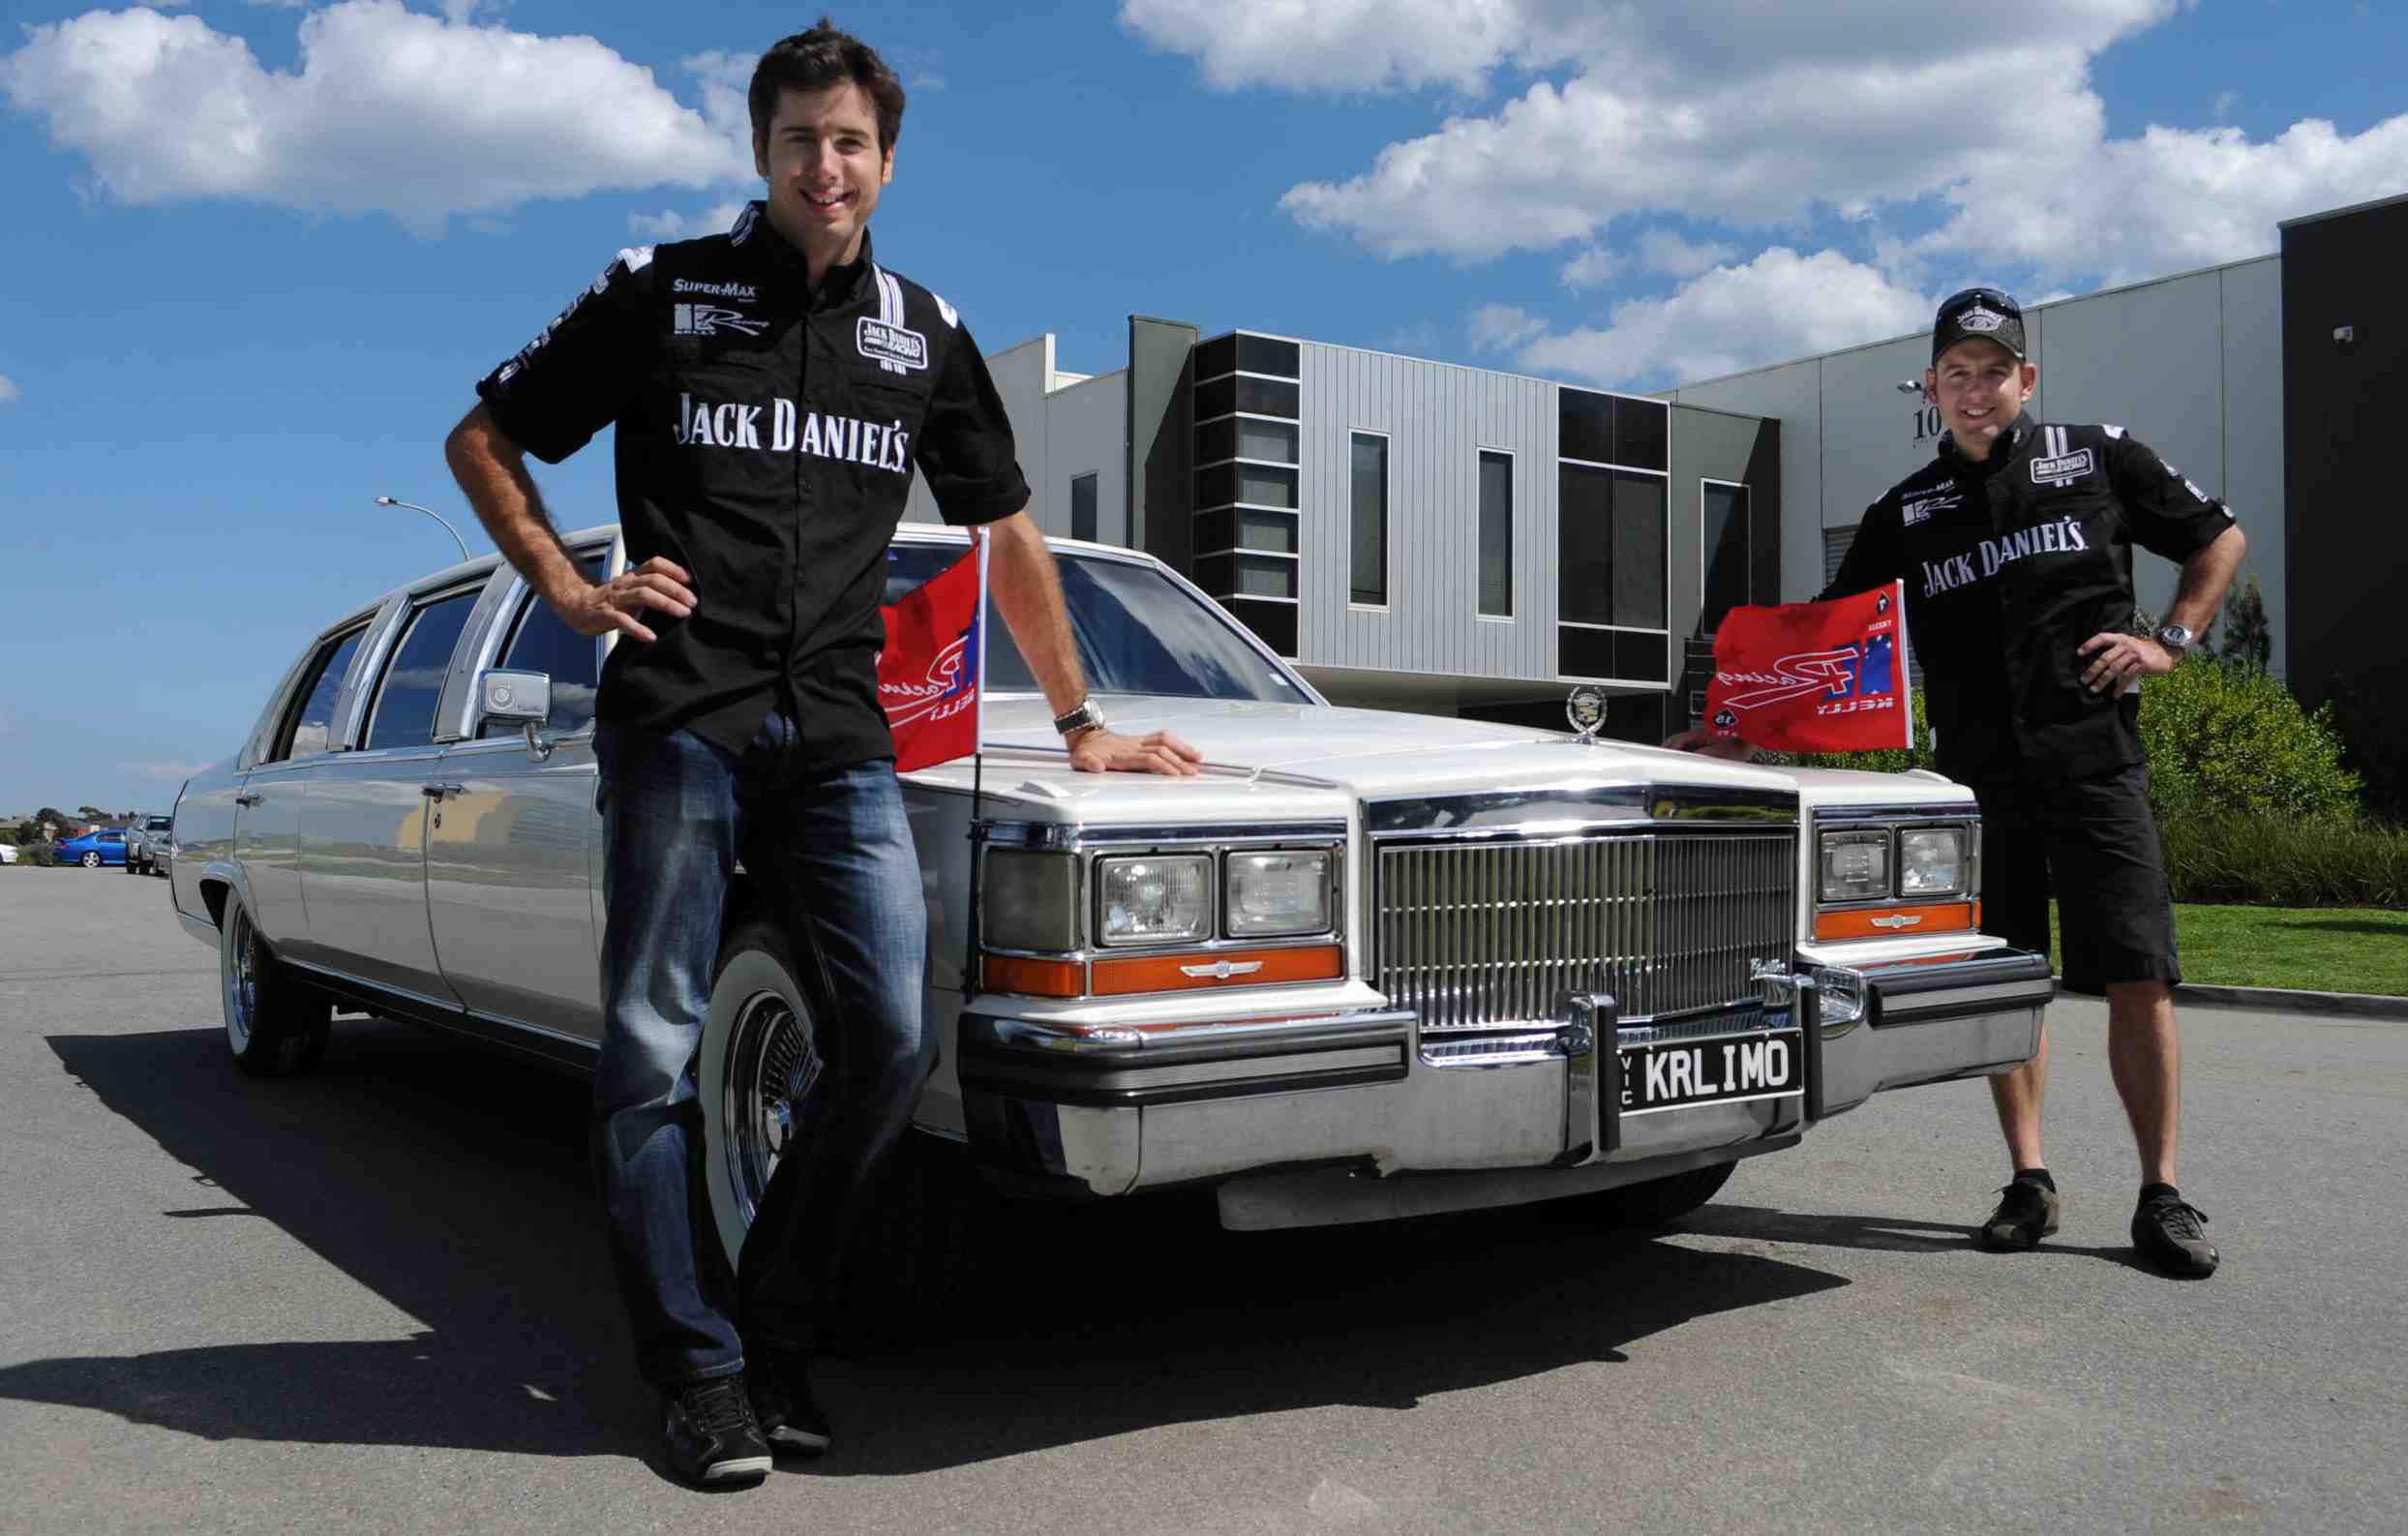 Kellys travel in style to Mount Panorama